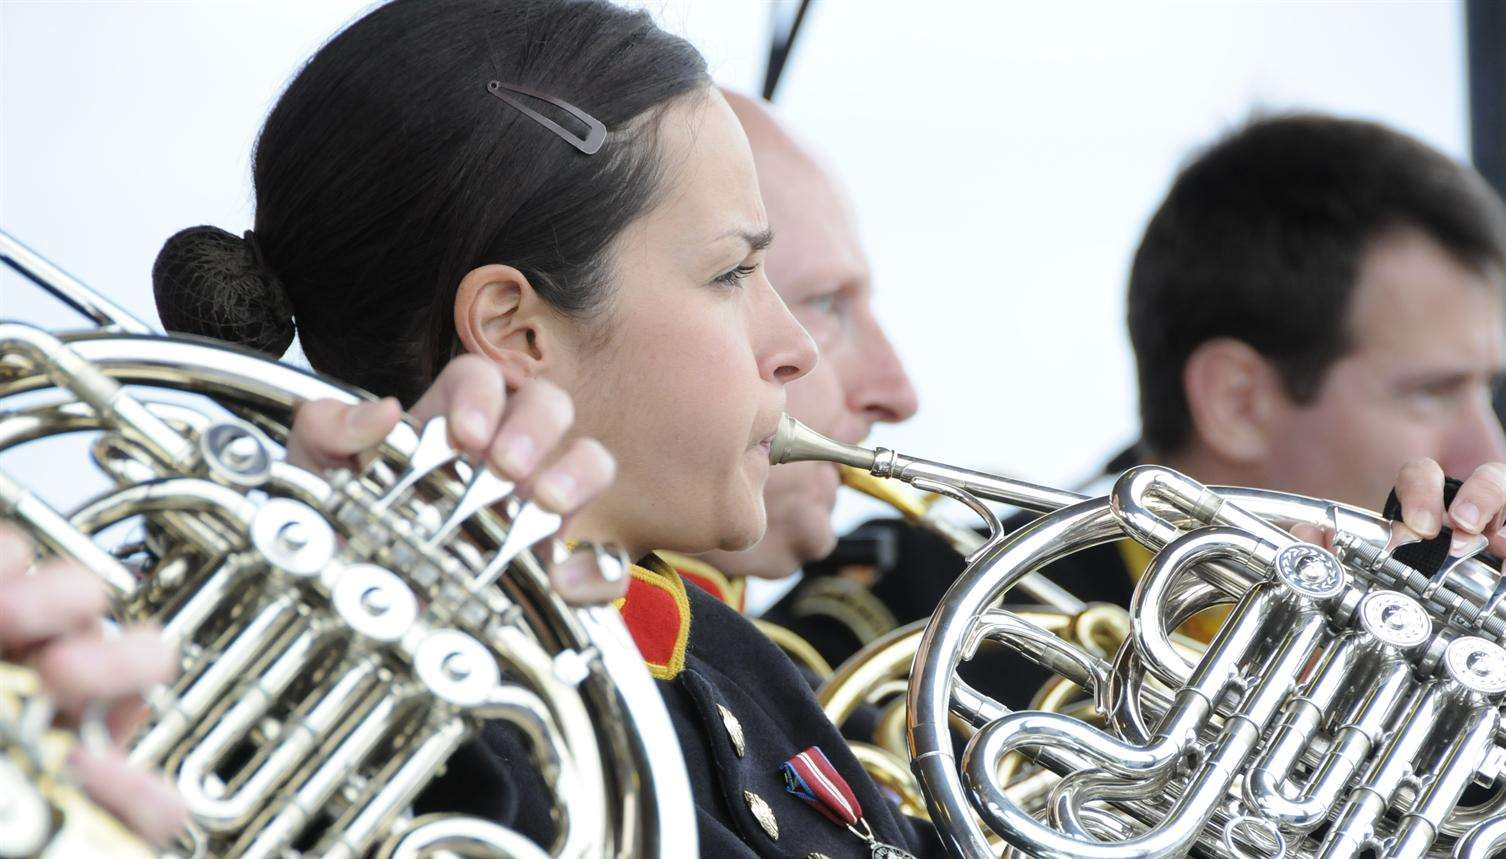 The Royal Marines band performing at Walmer bandstand